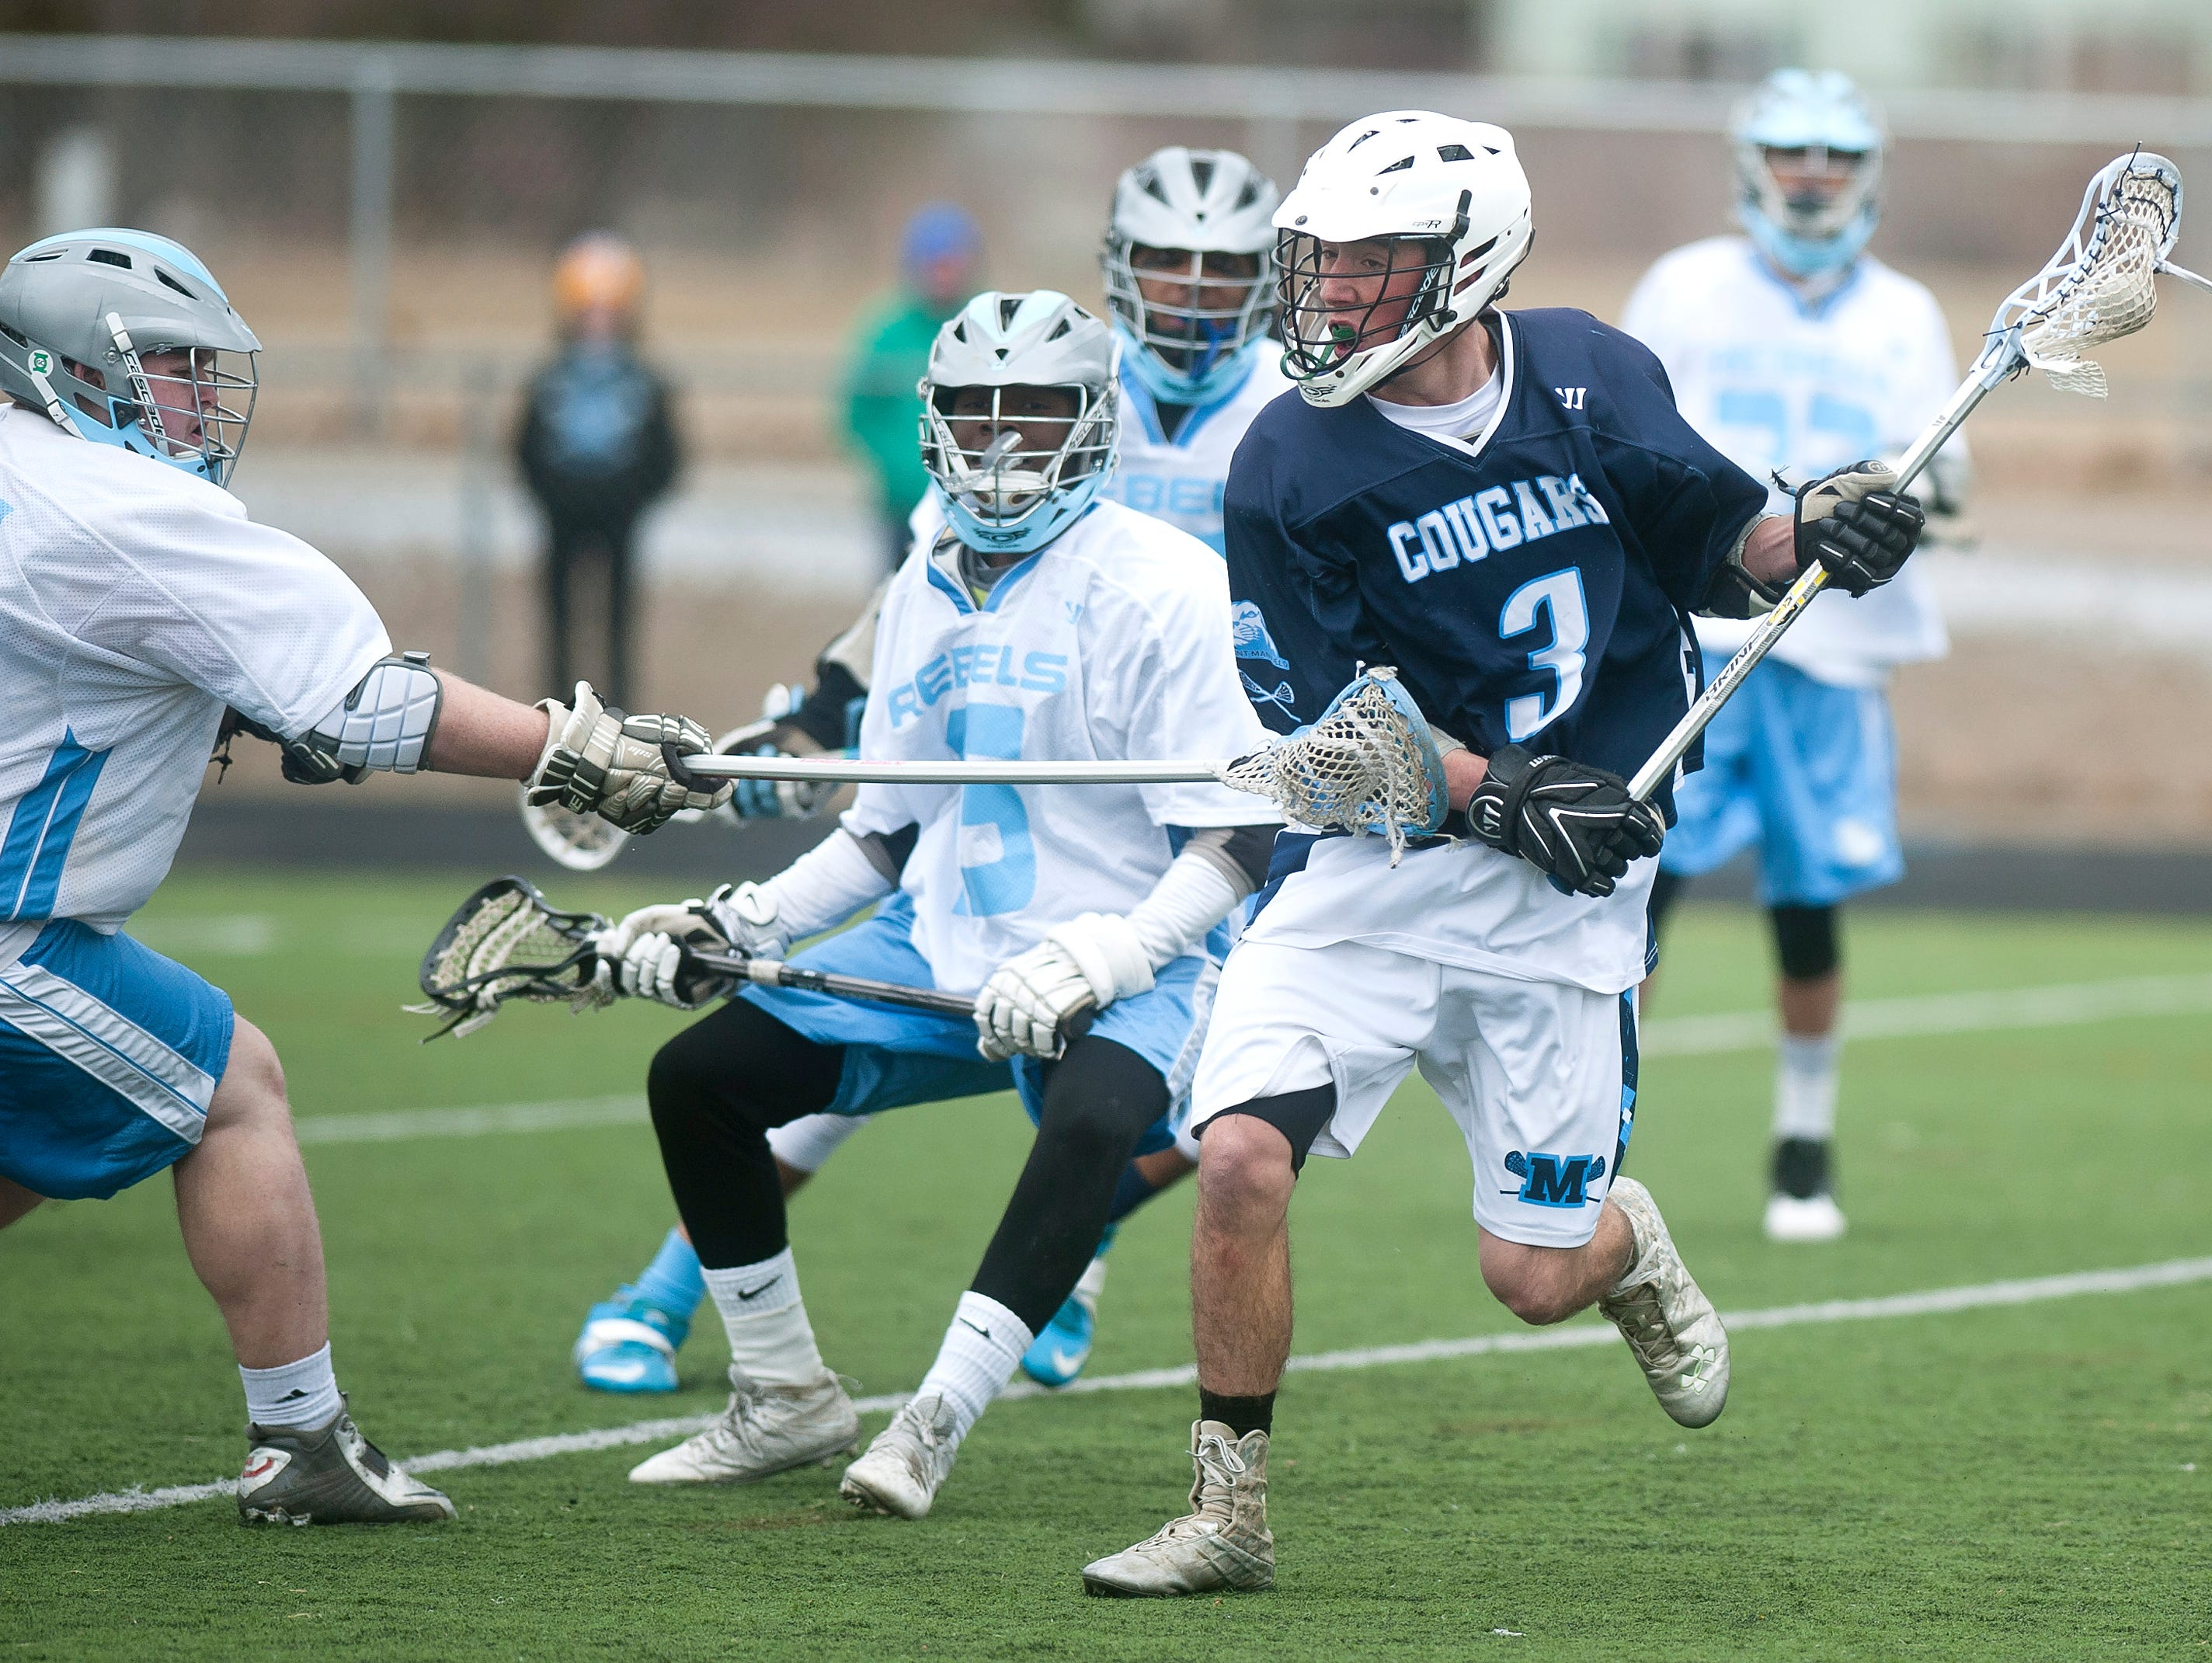 Mount Mansfield's Josh Brown, right, plays through a check from a South Burlington defender during Saturday's game.